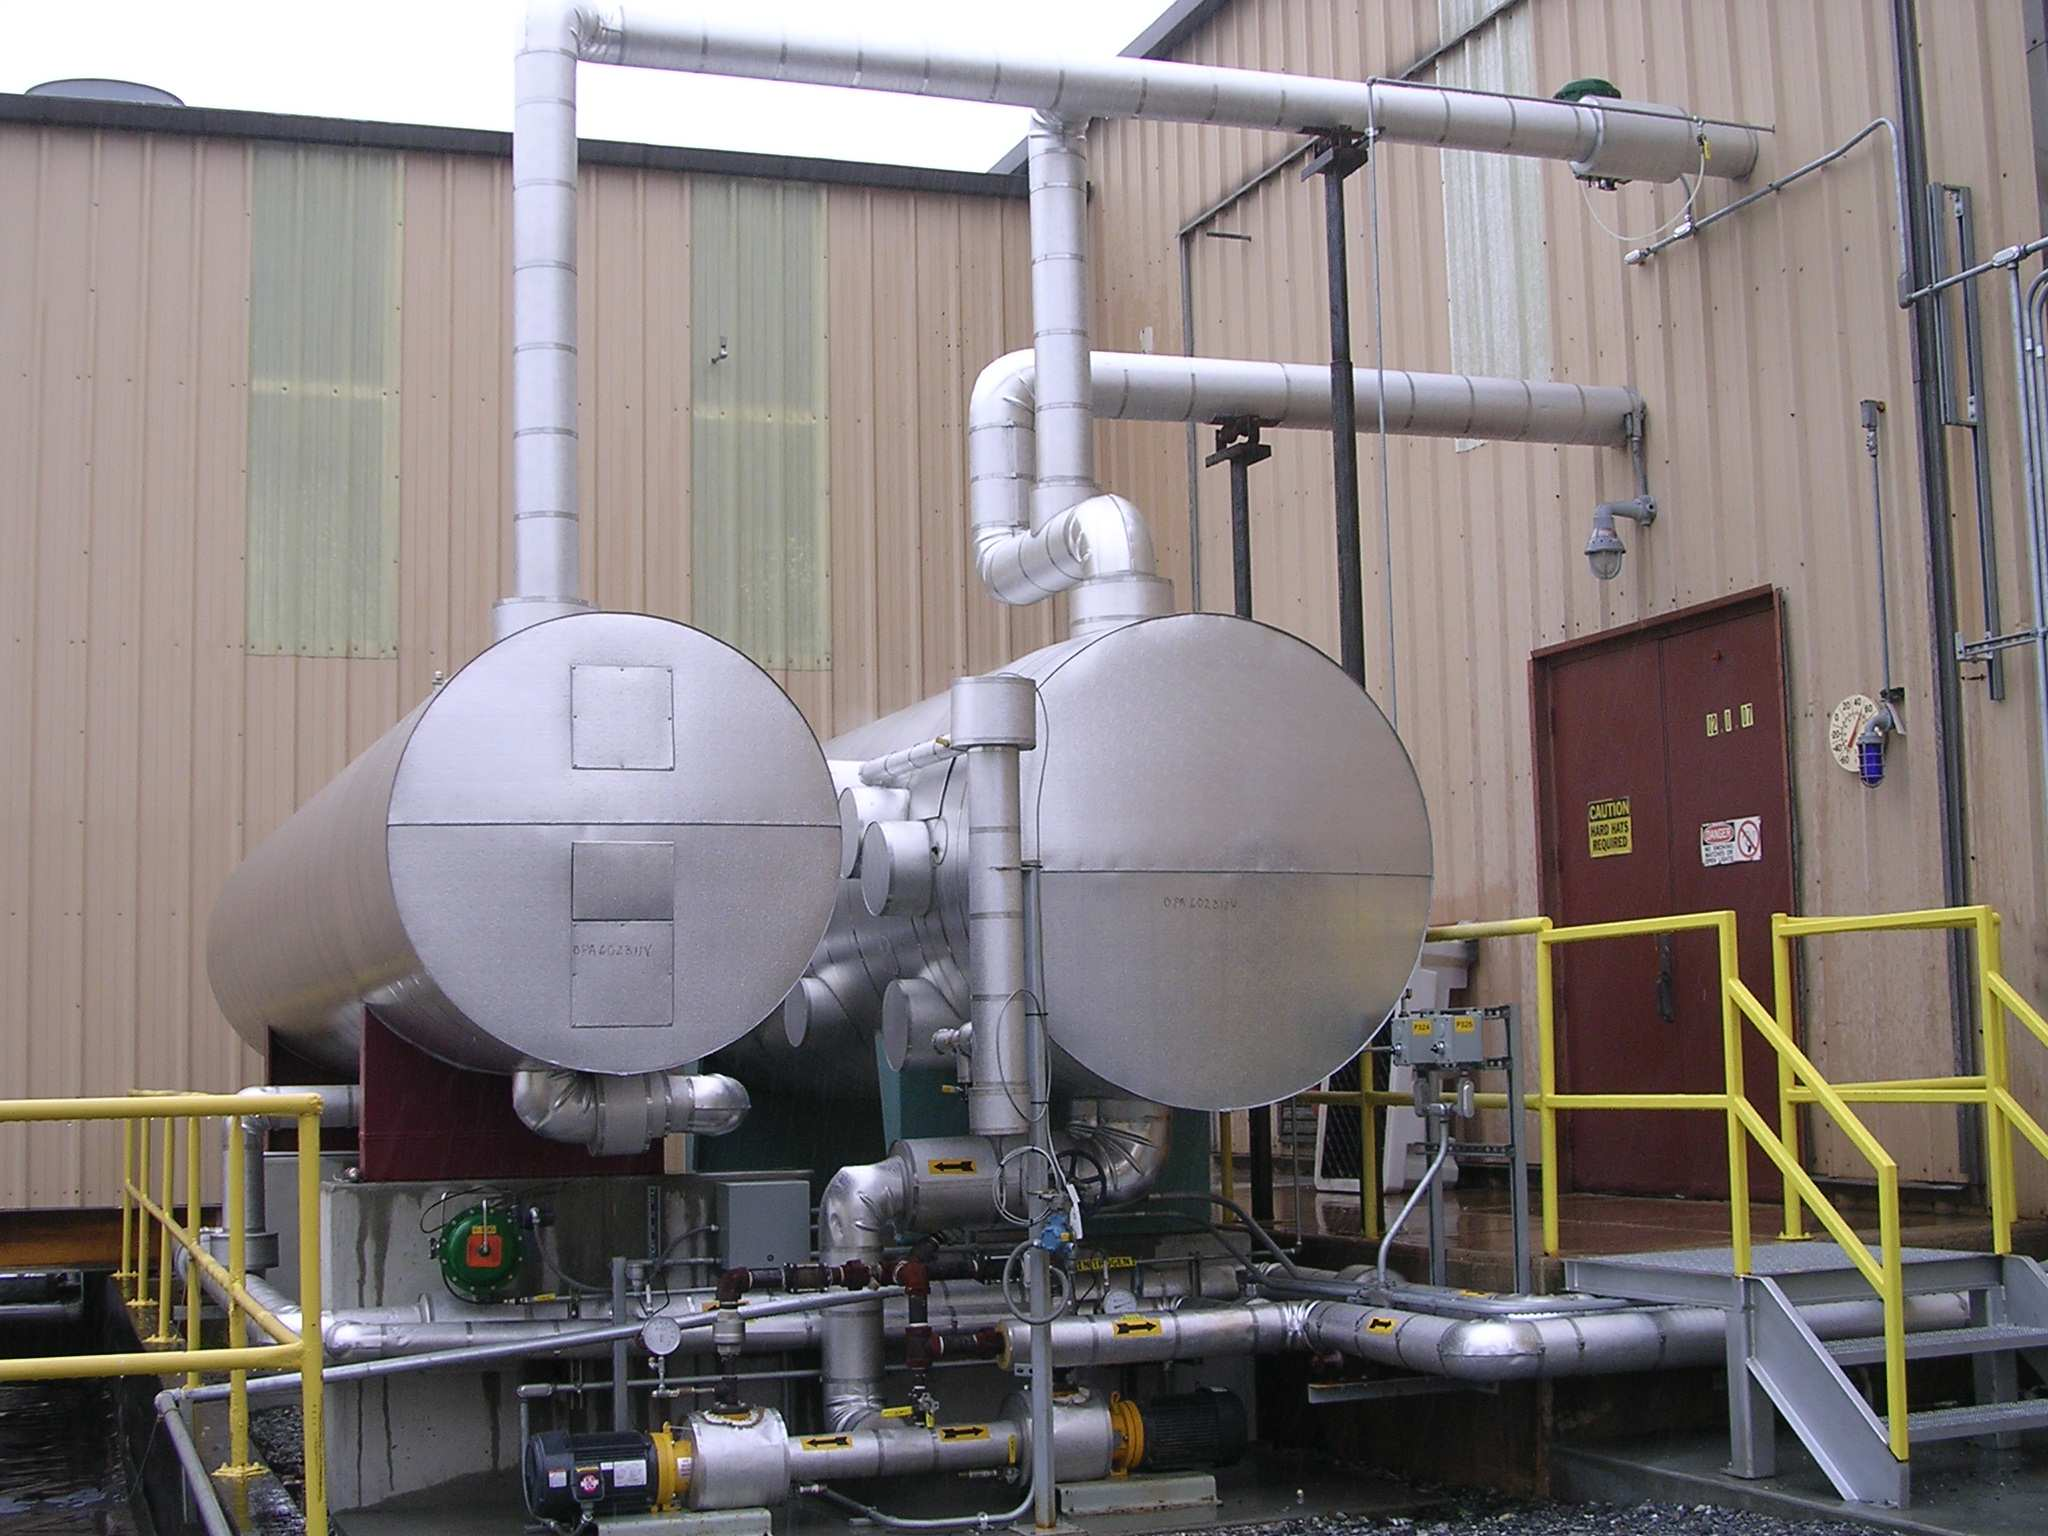 Piping and Equipment for Steam Processing